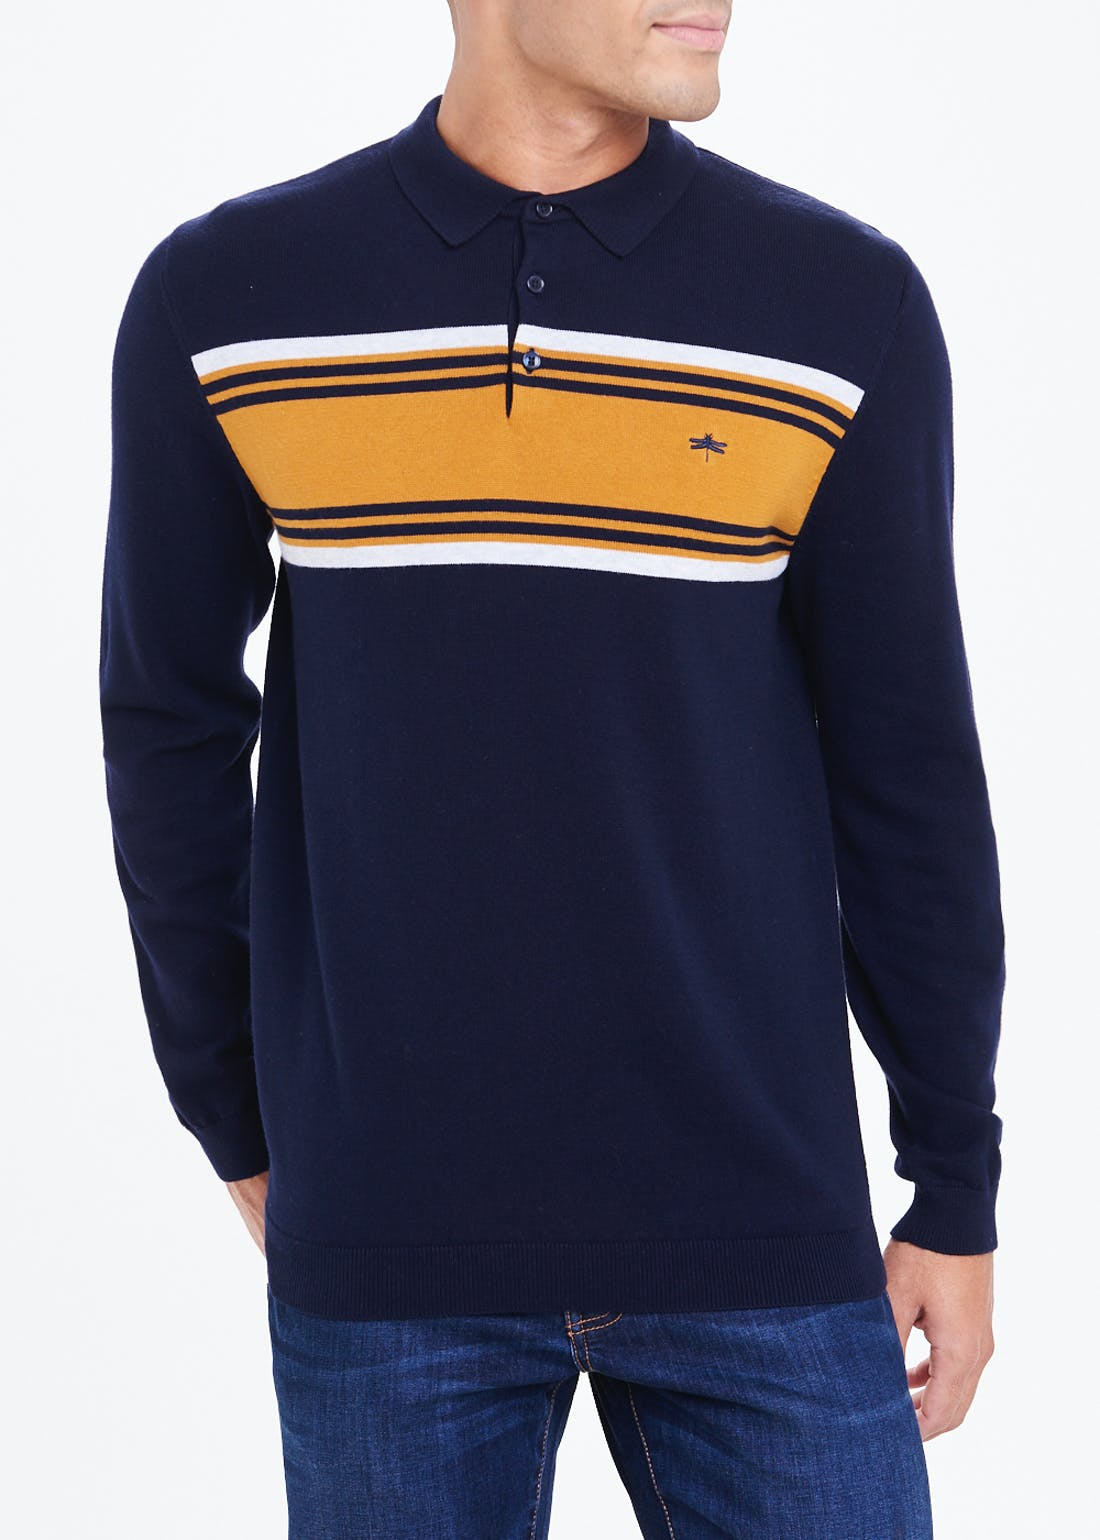 Long Sleeve Stripe Knitted Polo Shirt